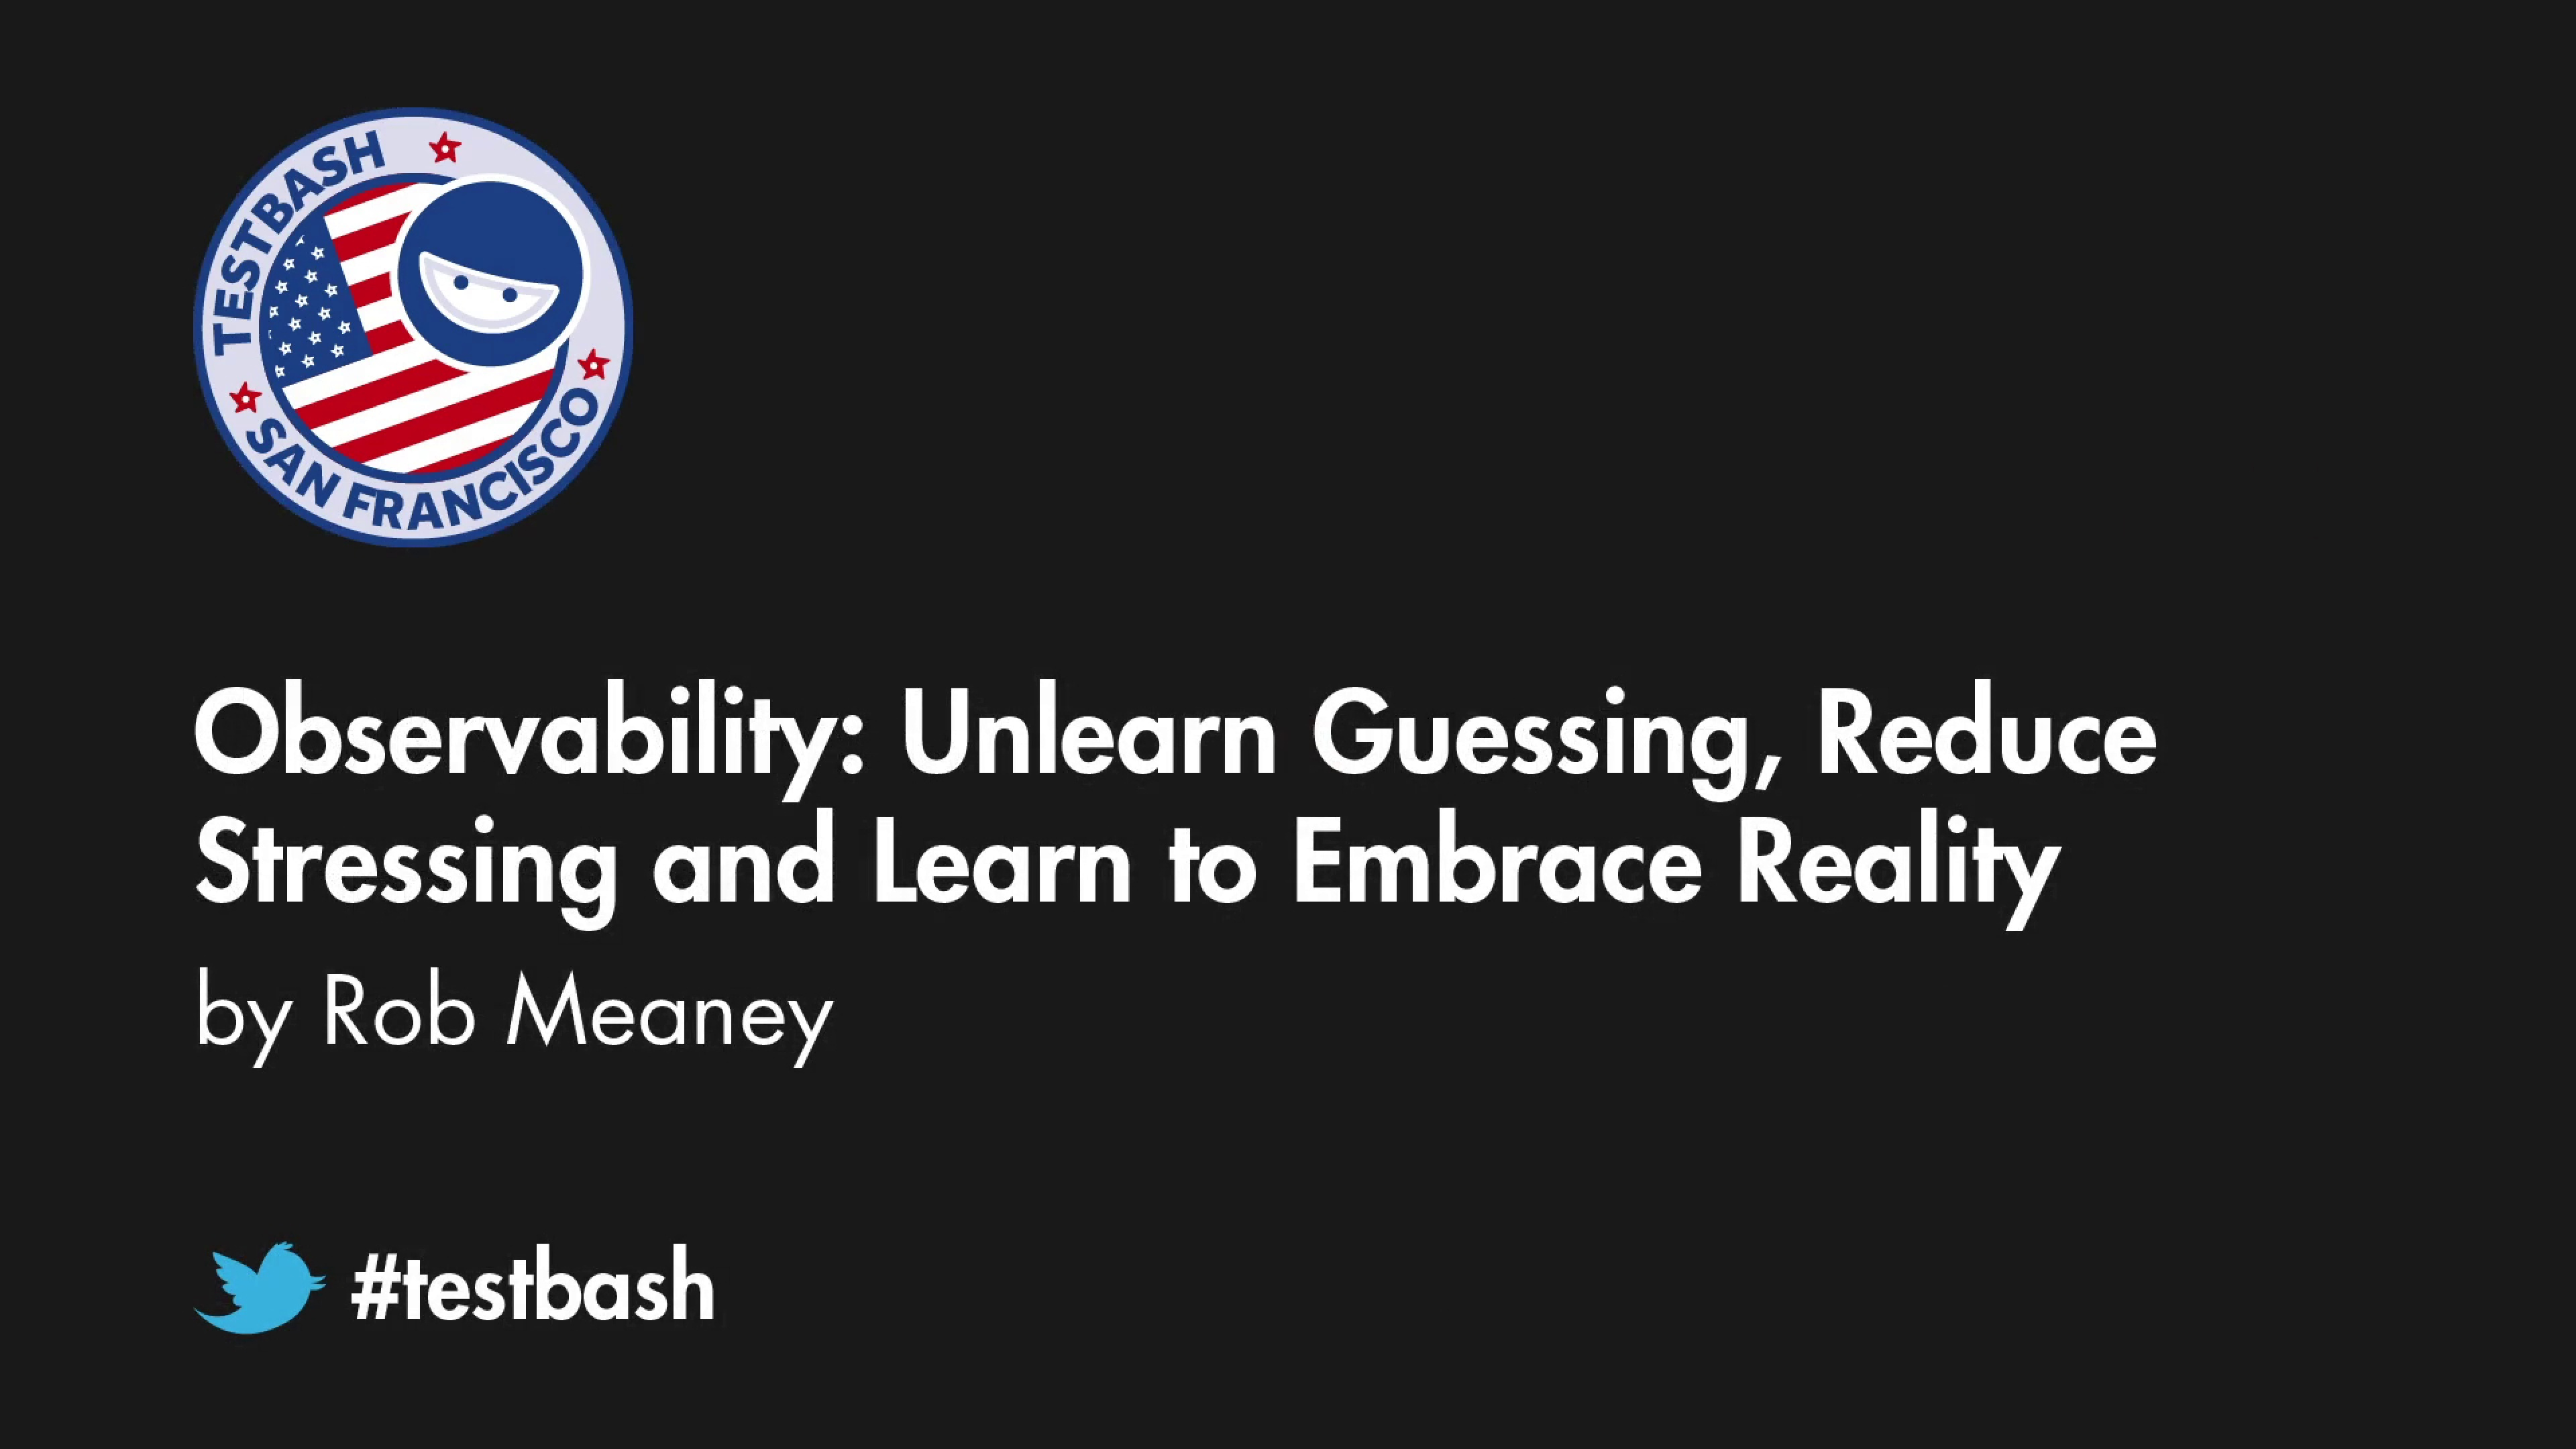 Observability: Unlearn Guessing, Reduce Stressing and Learn to Embrace Reality - Rob Meaney